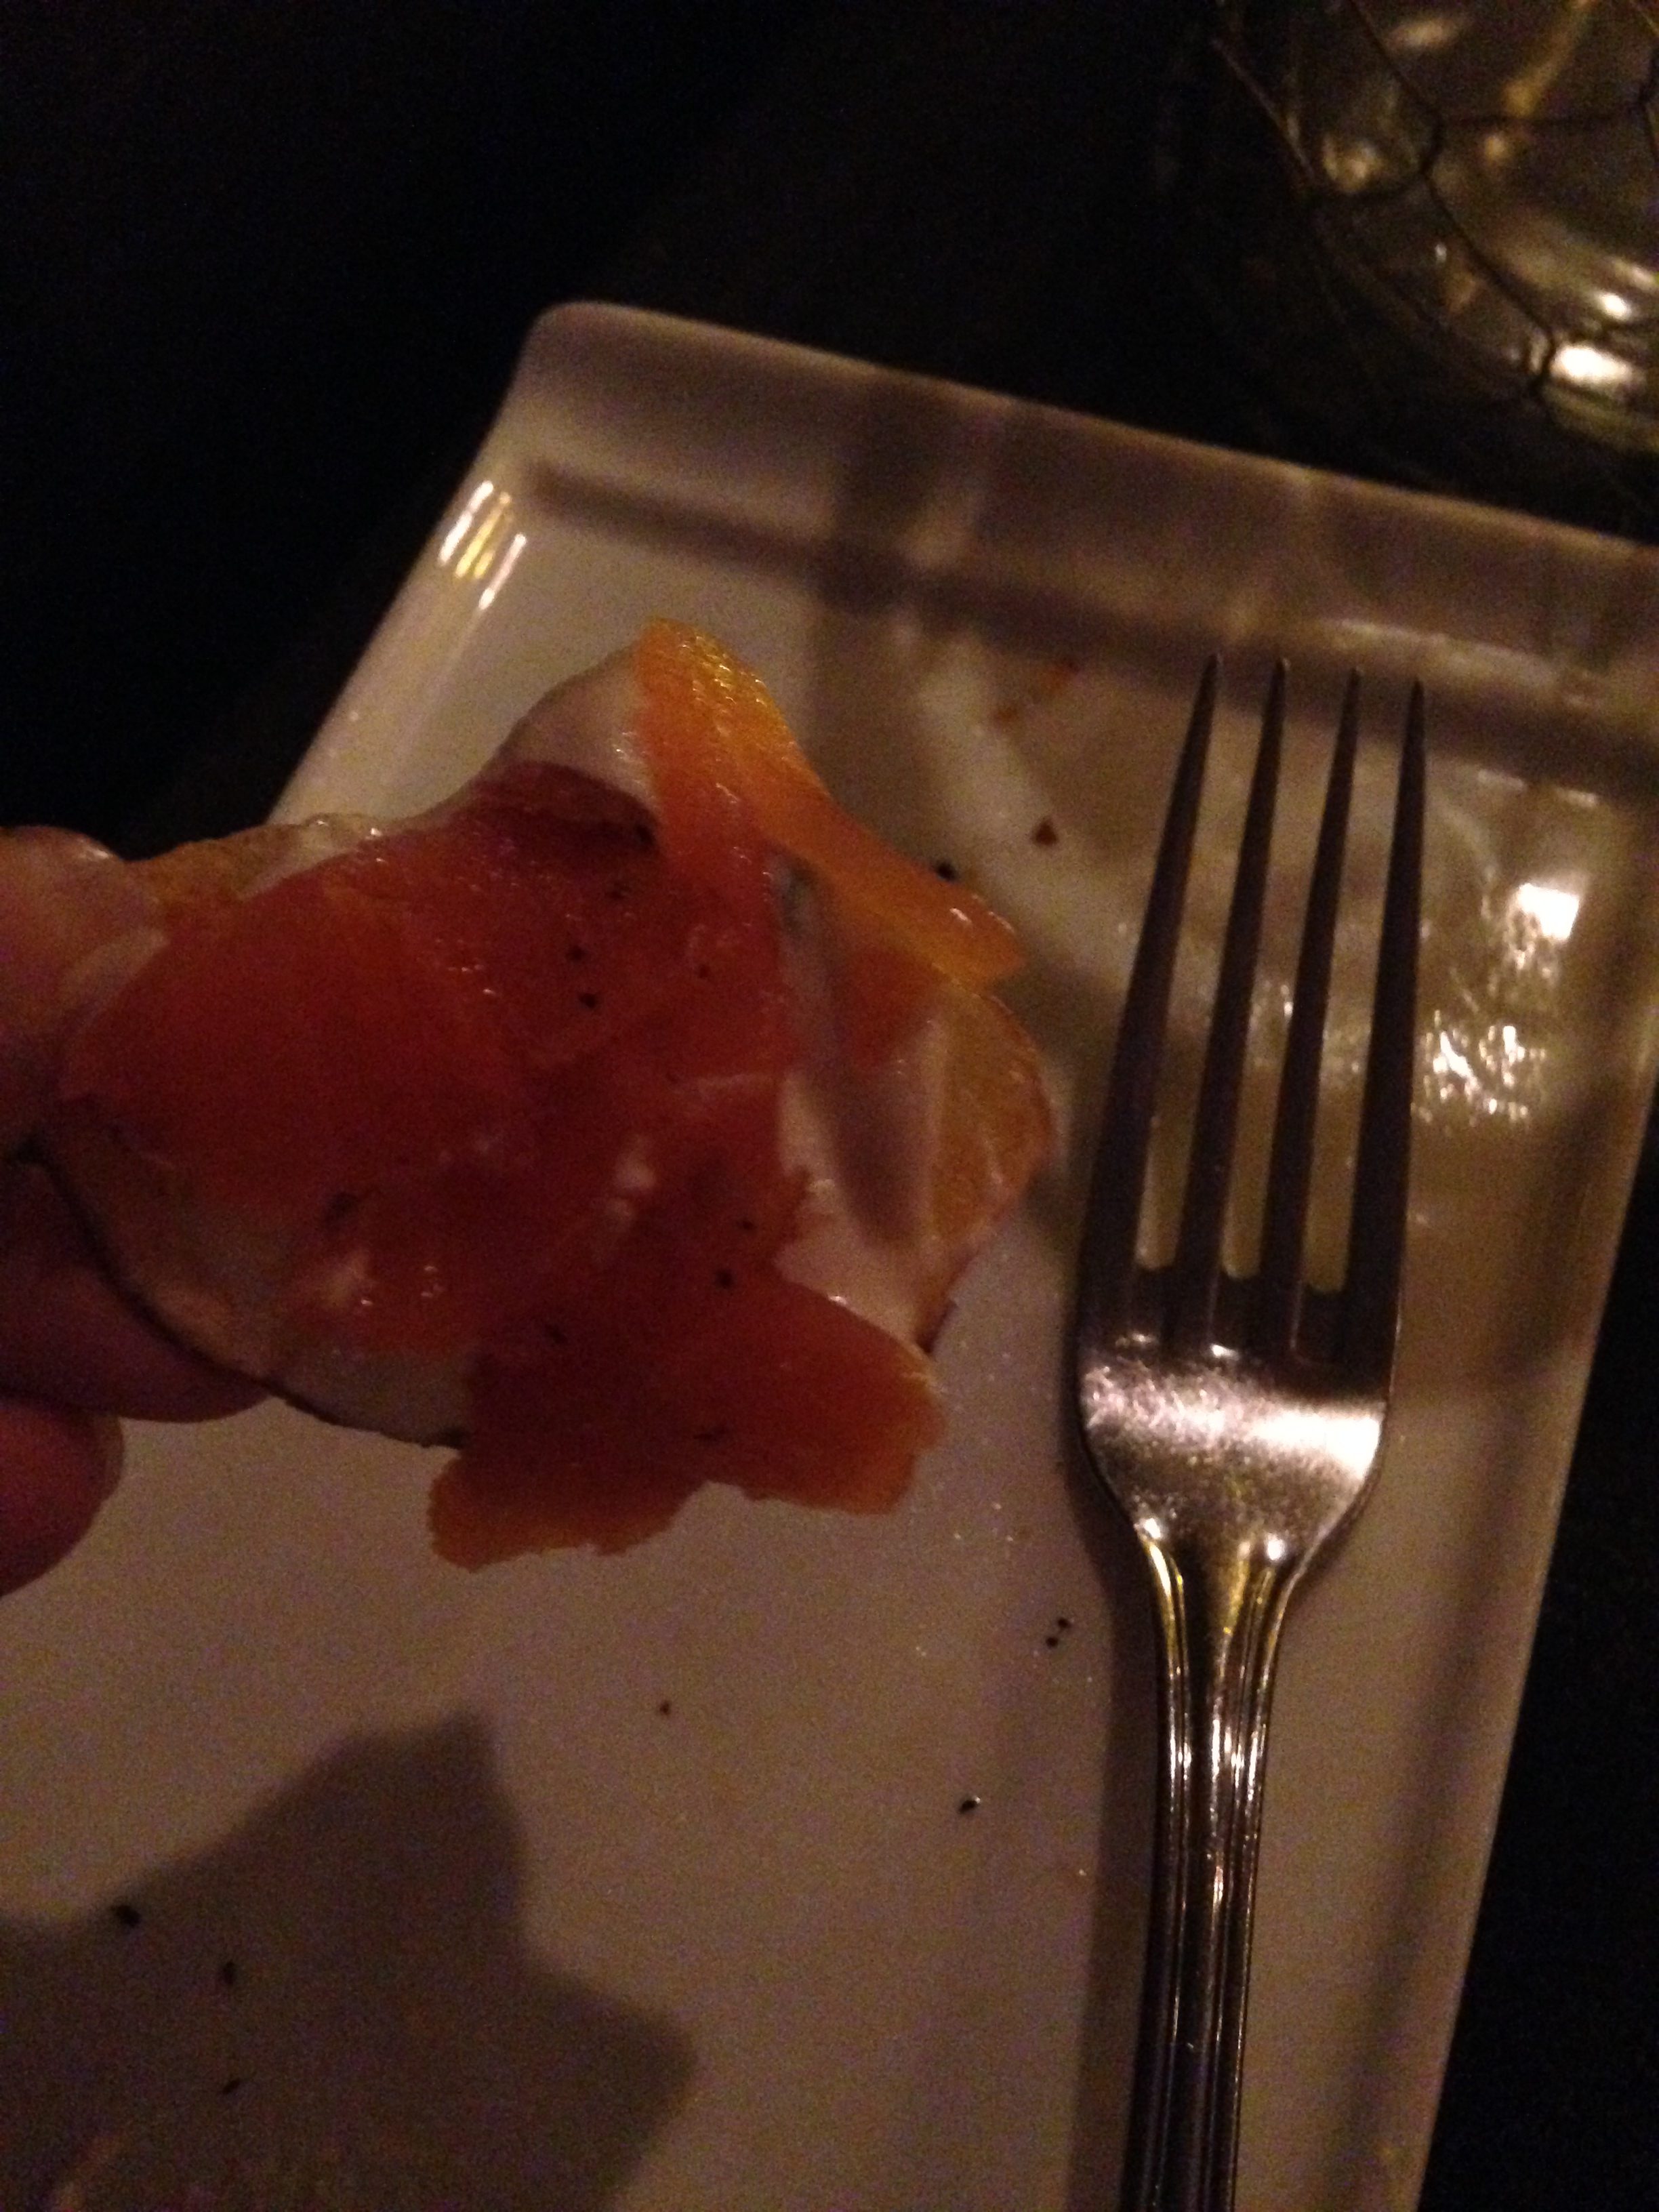 The salmon was especially tasty with the appetizer!